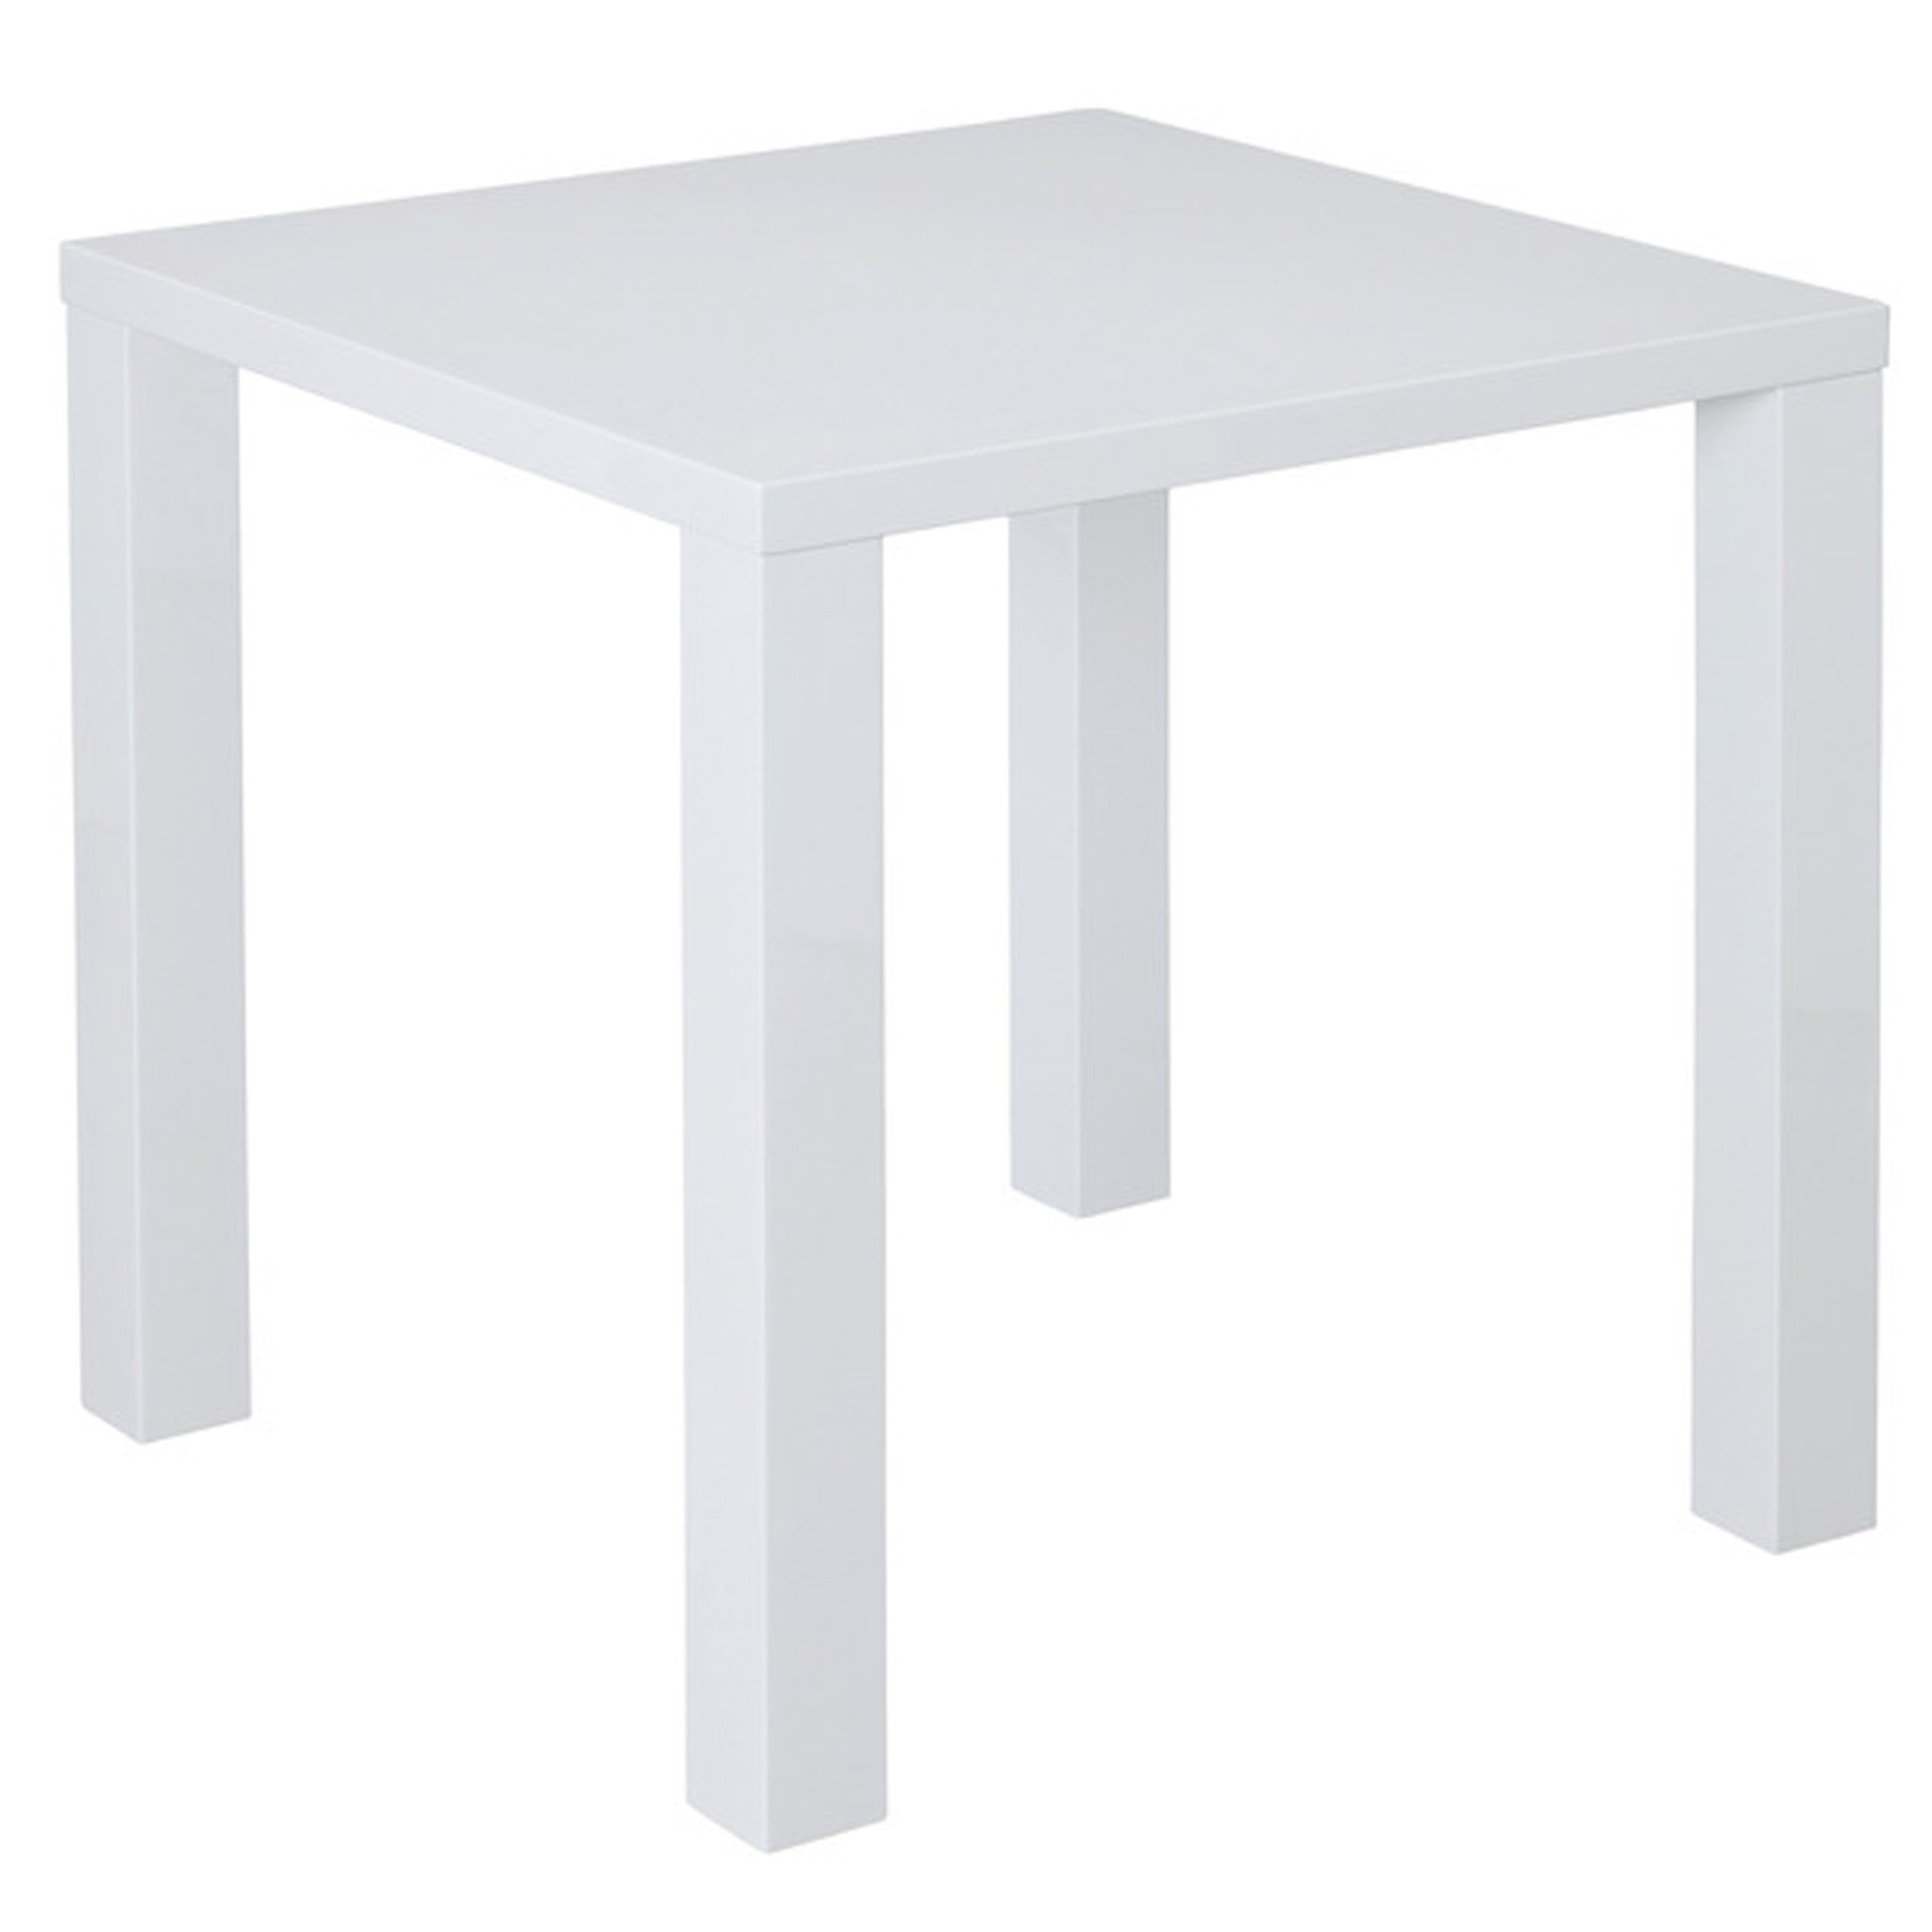 Puro White Small Dining Table White Dining Table Dining Table